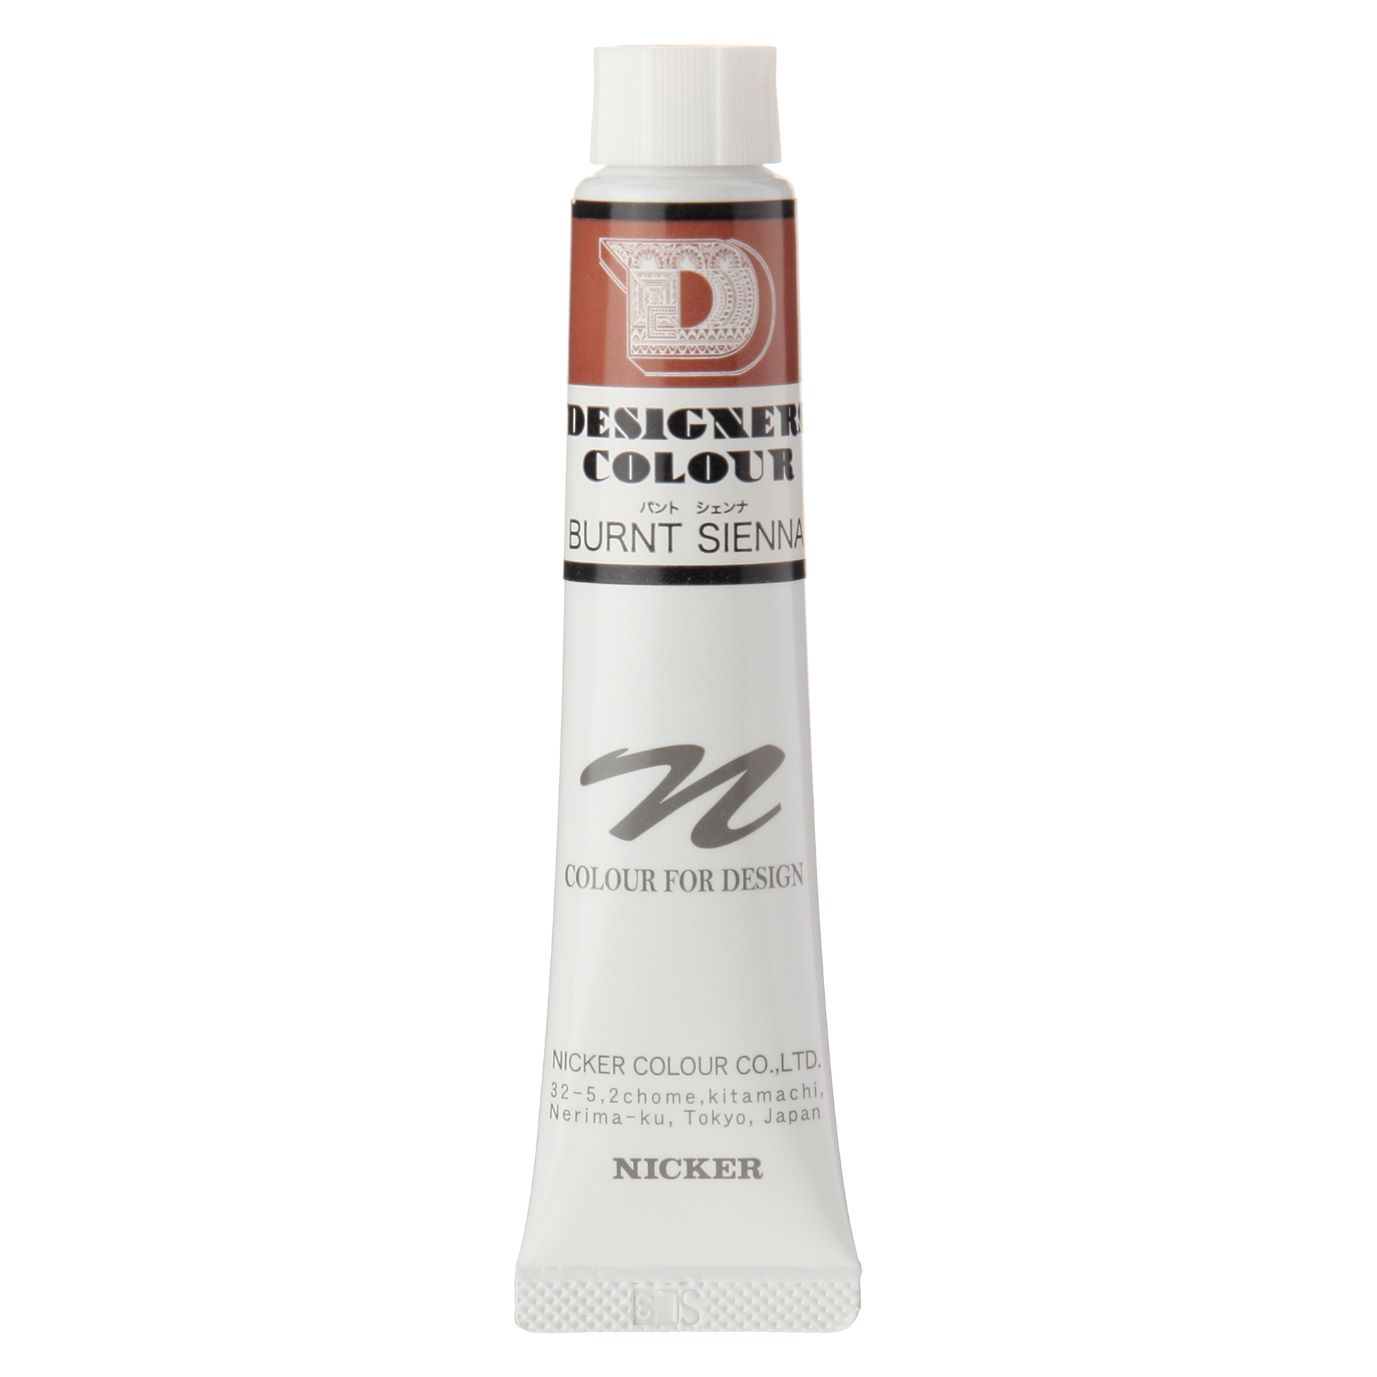 DESIGNERS COLOUR 20ml 514 BURNT SIENNA